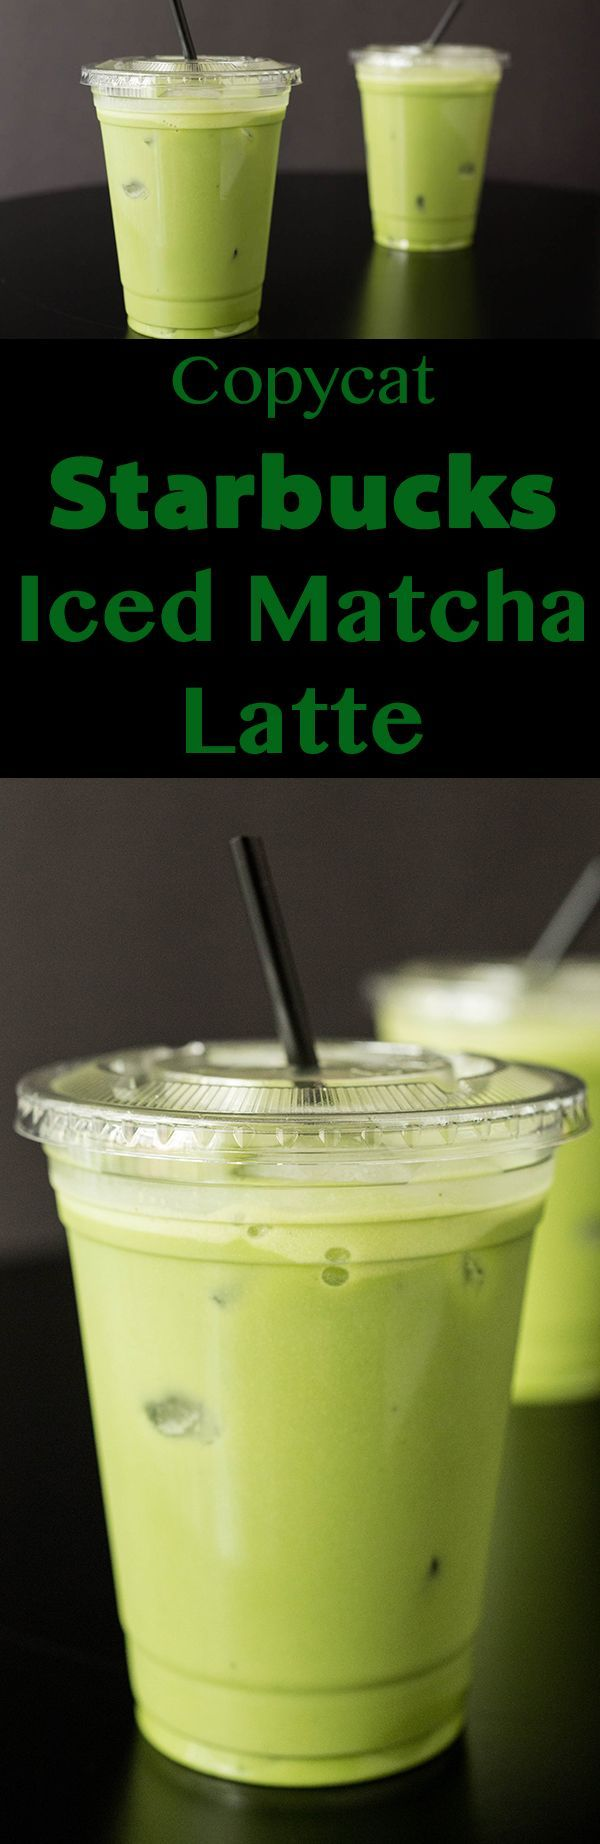 Starbucks Iced Matcha Latte Recipe